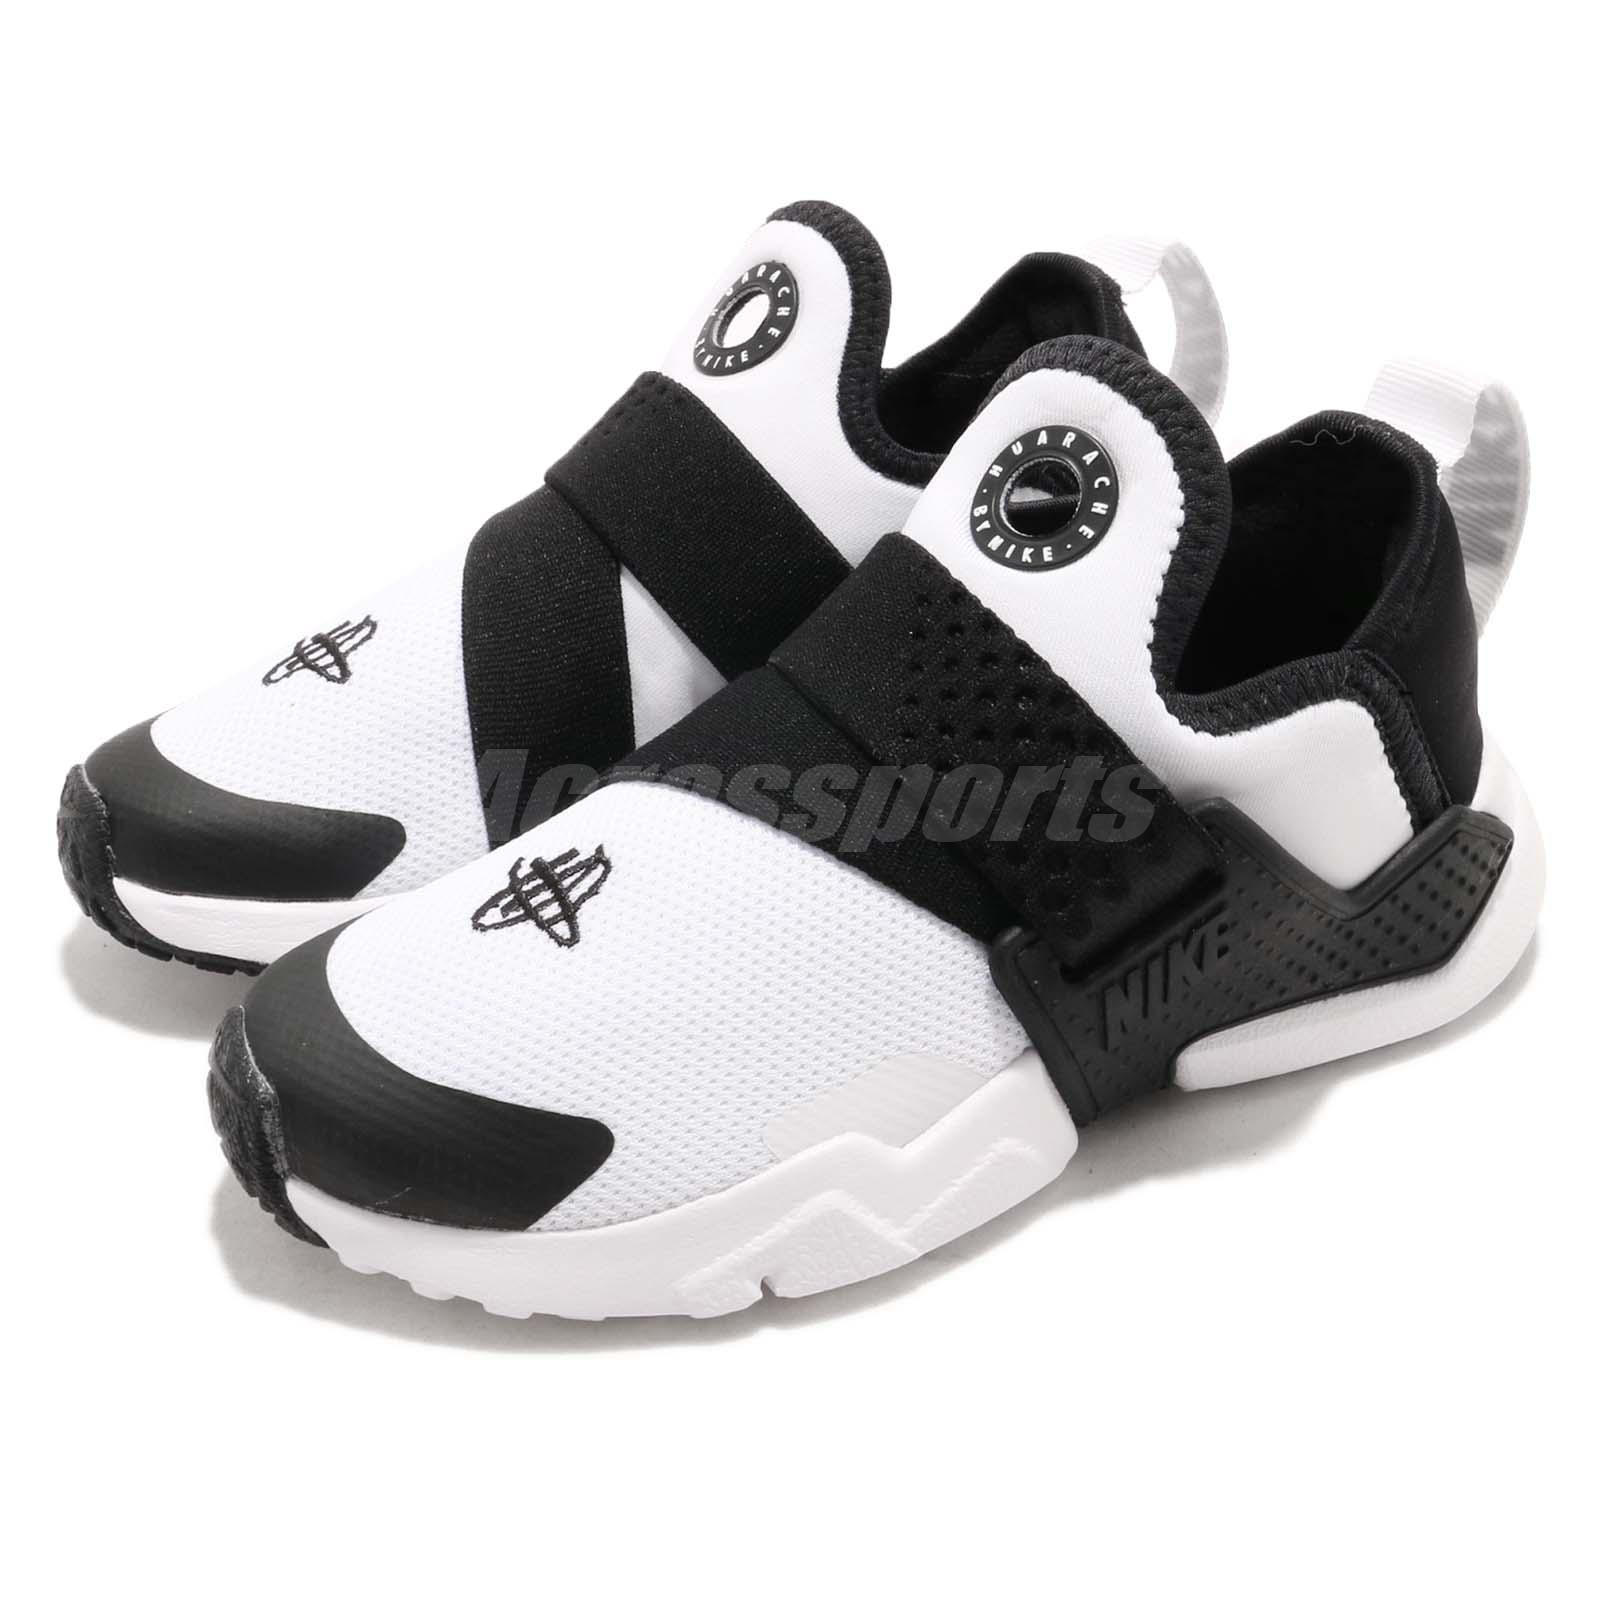 4c263583eef7e Details about Nike Huarache Extreme PS White Black Preschool Boy Girl Slip  On Shoes AH7826-101